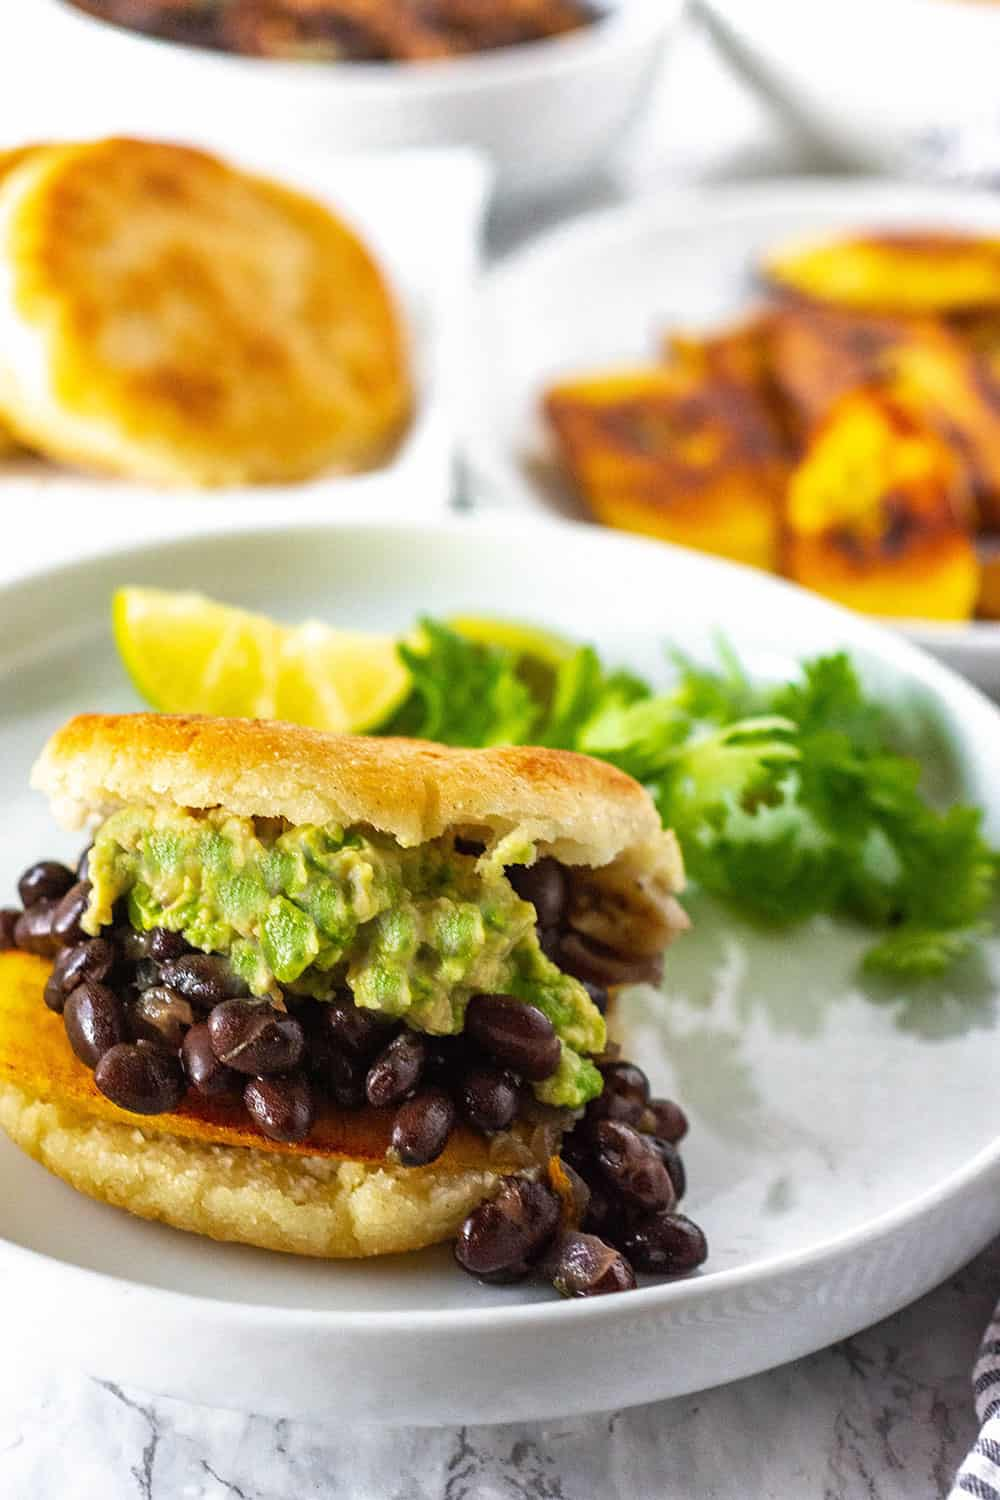 How To Make Arepas With Black Beans Plantains And Guacamole